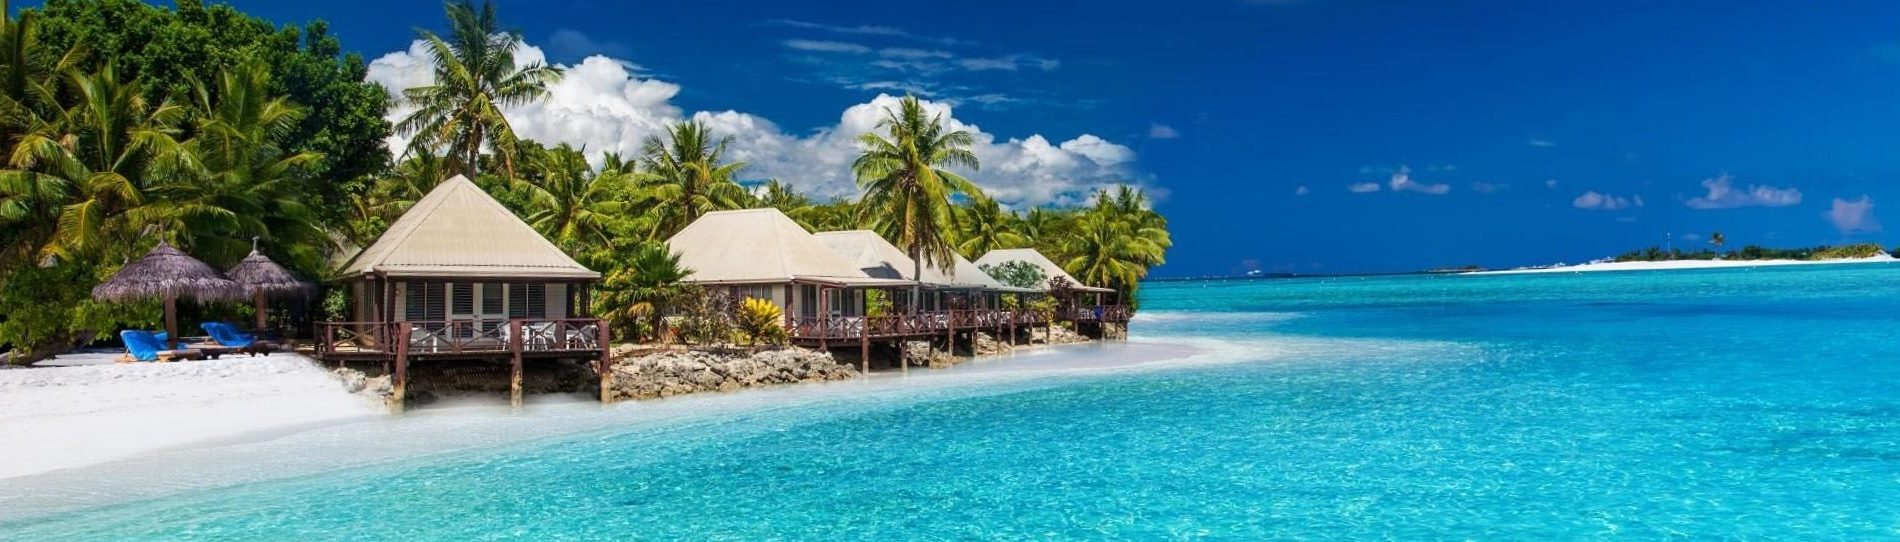 fiji bucks party destination